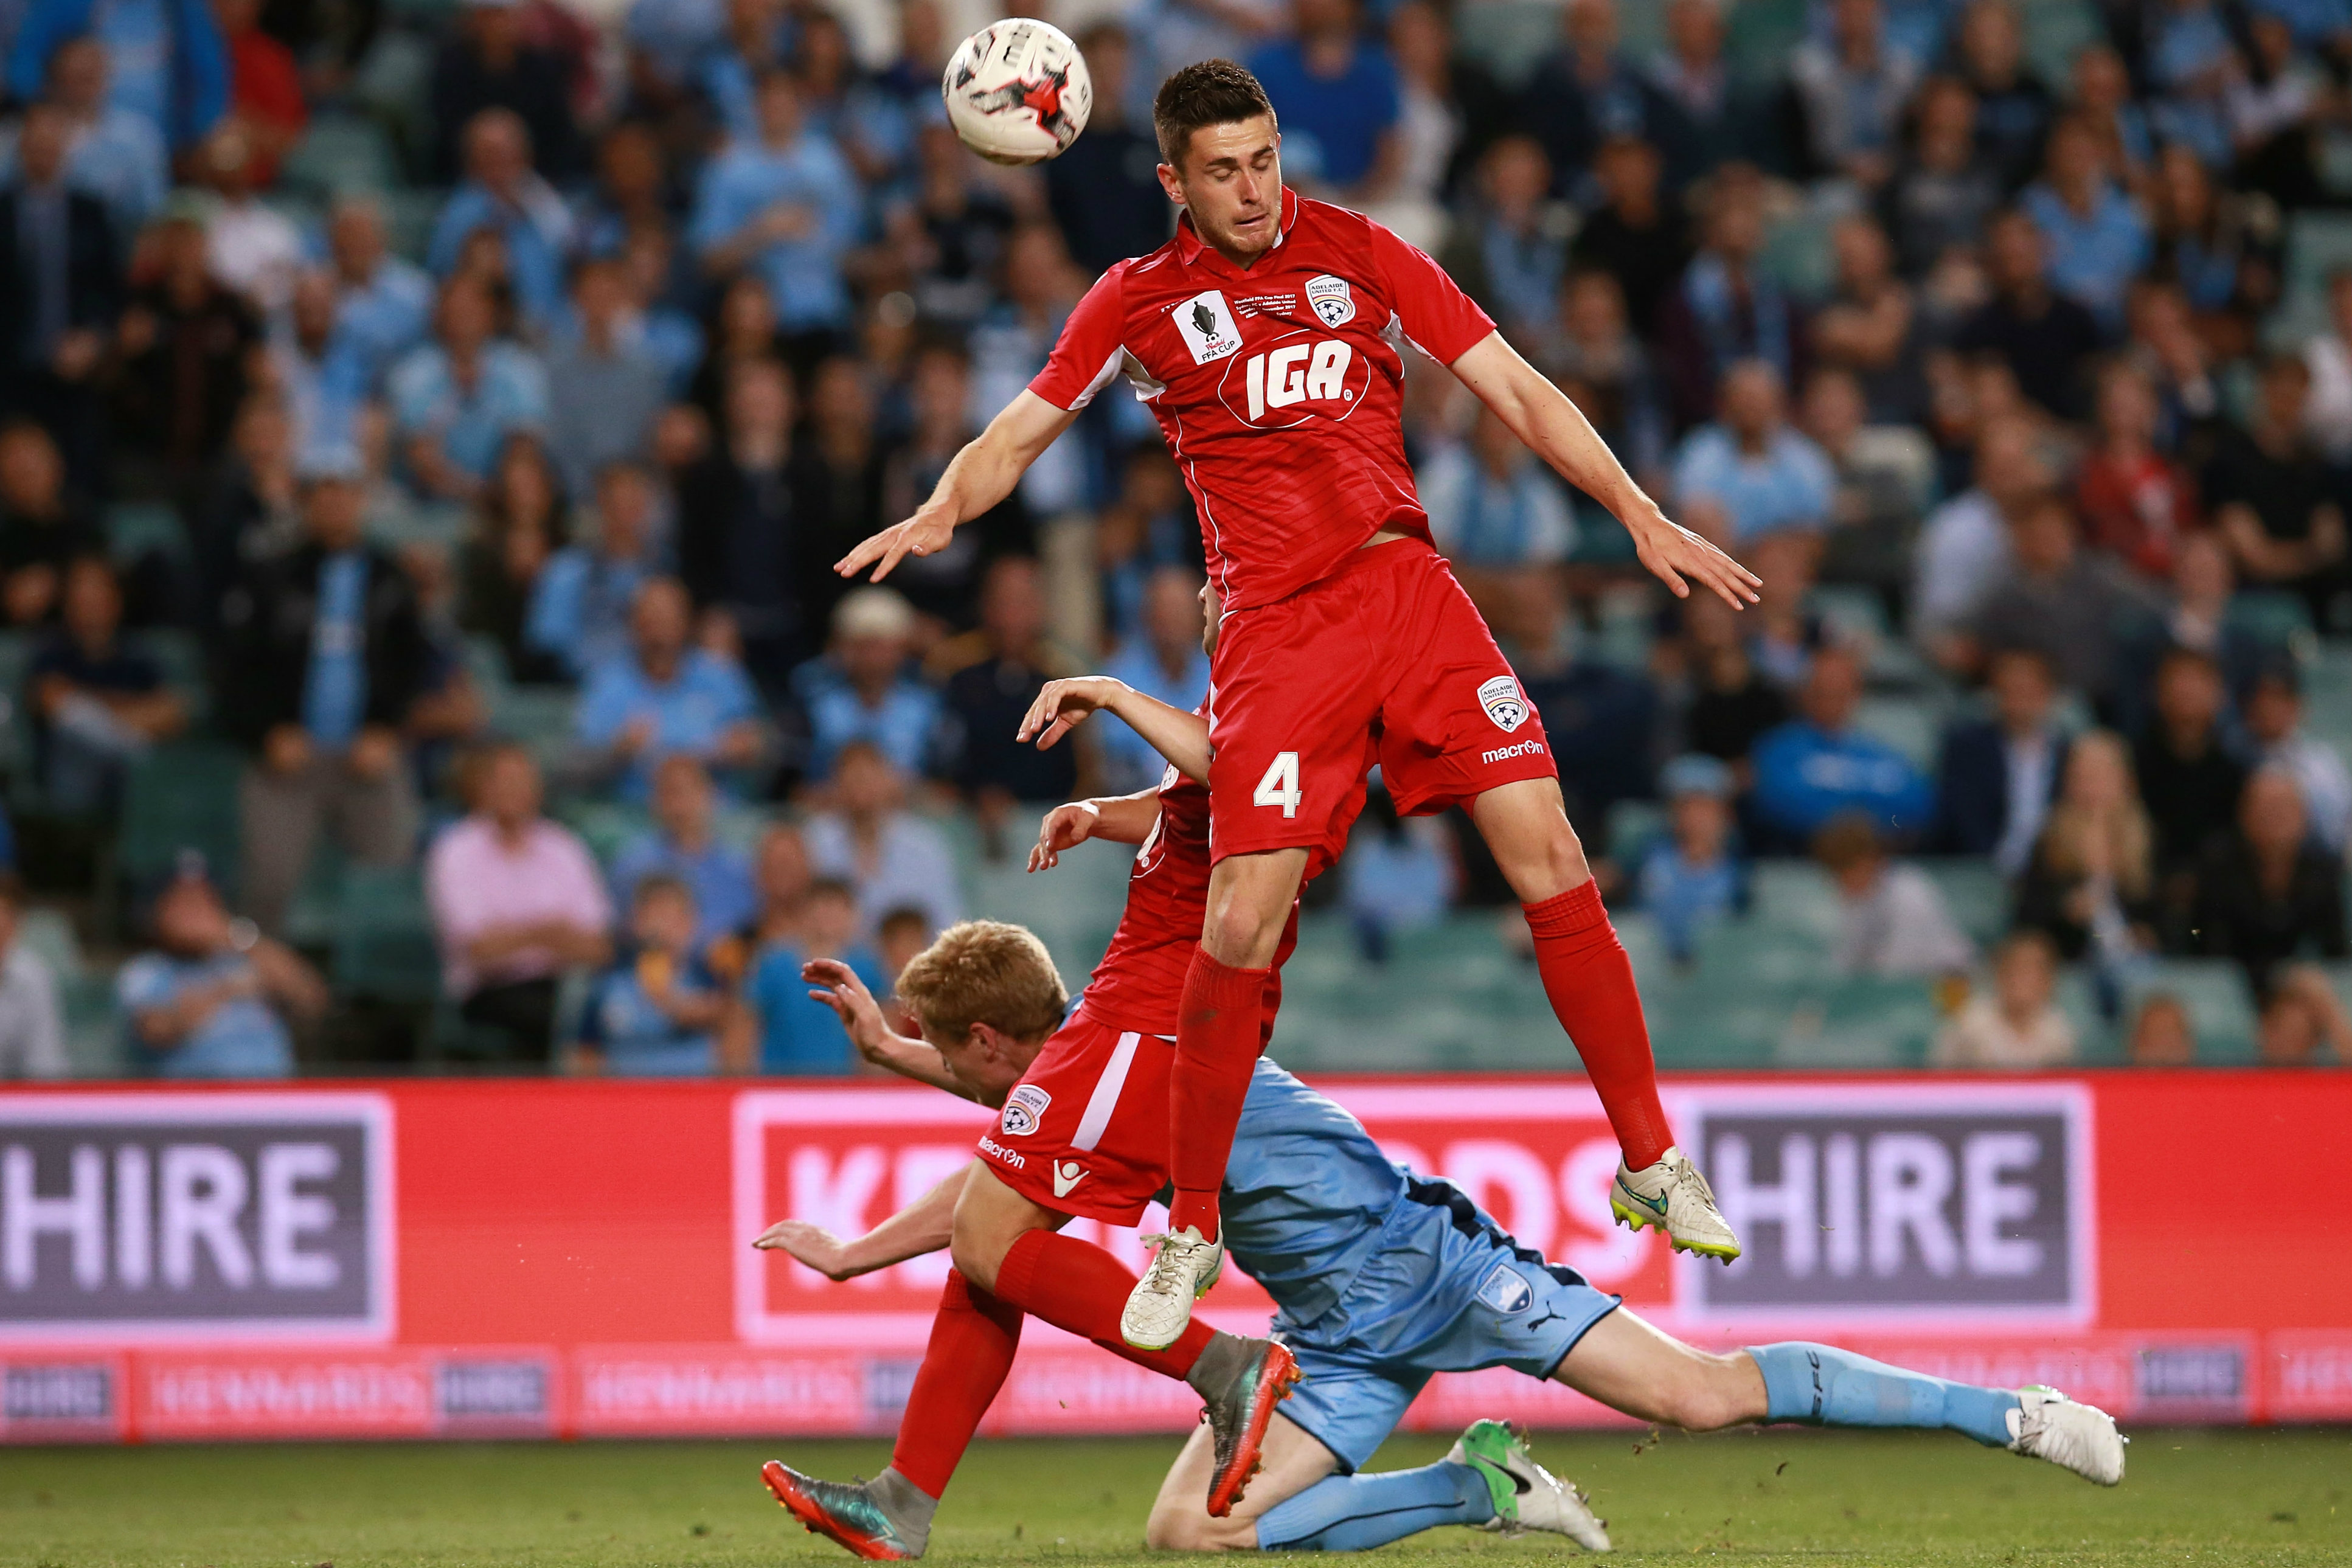 Ben Warland played against Sydney FC in the 2017 FFA Cup final.